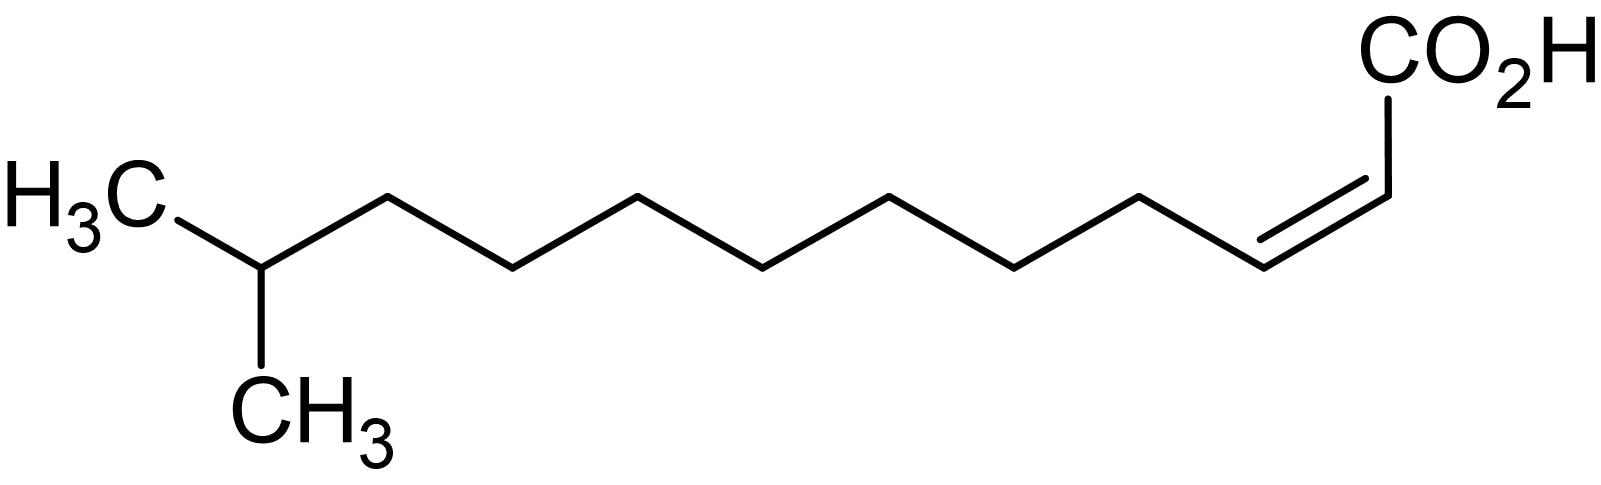 Chemical Structure - cis-11-Methyl-2-dodecenoic acid, Diffusible signal factor (ab145274)